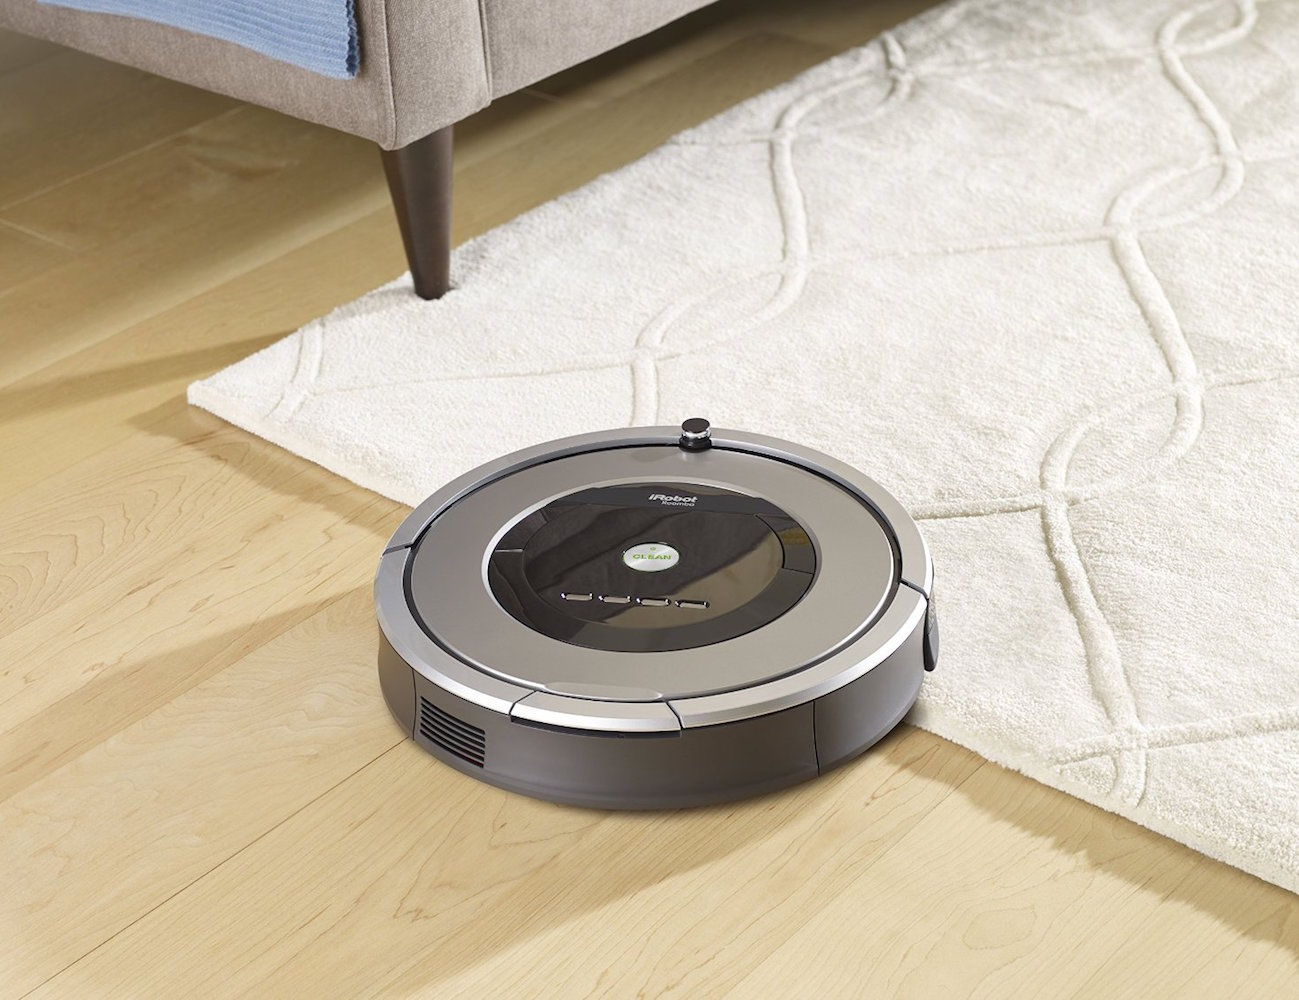 irobot roomba 860 vacuum cleaning robot 187 review